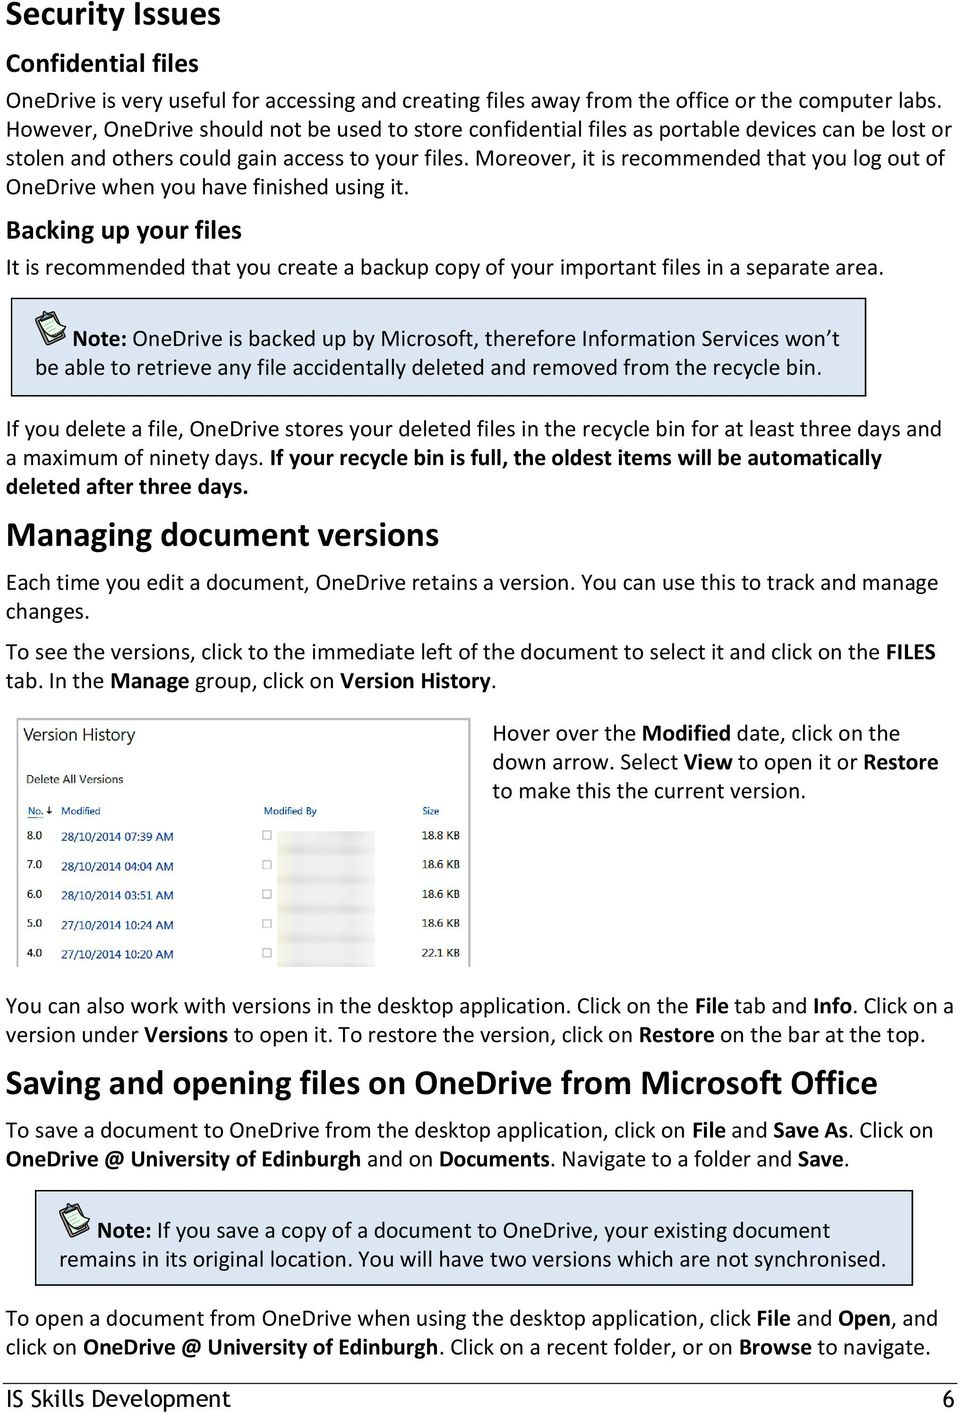 Moreover, it is recommended that you log out of OneDrive when you have finished using it.